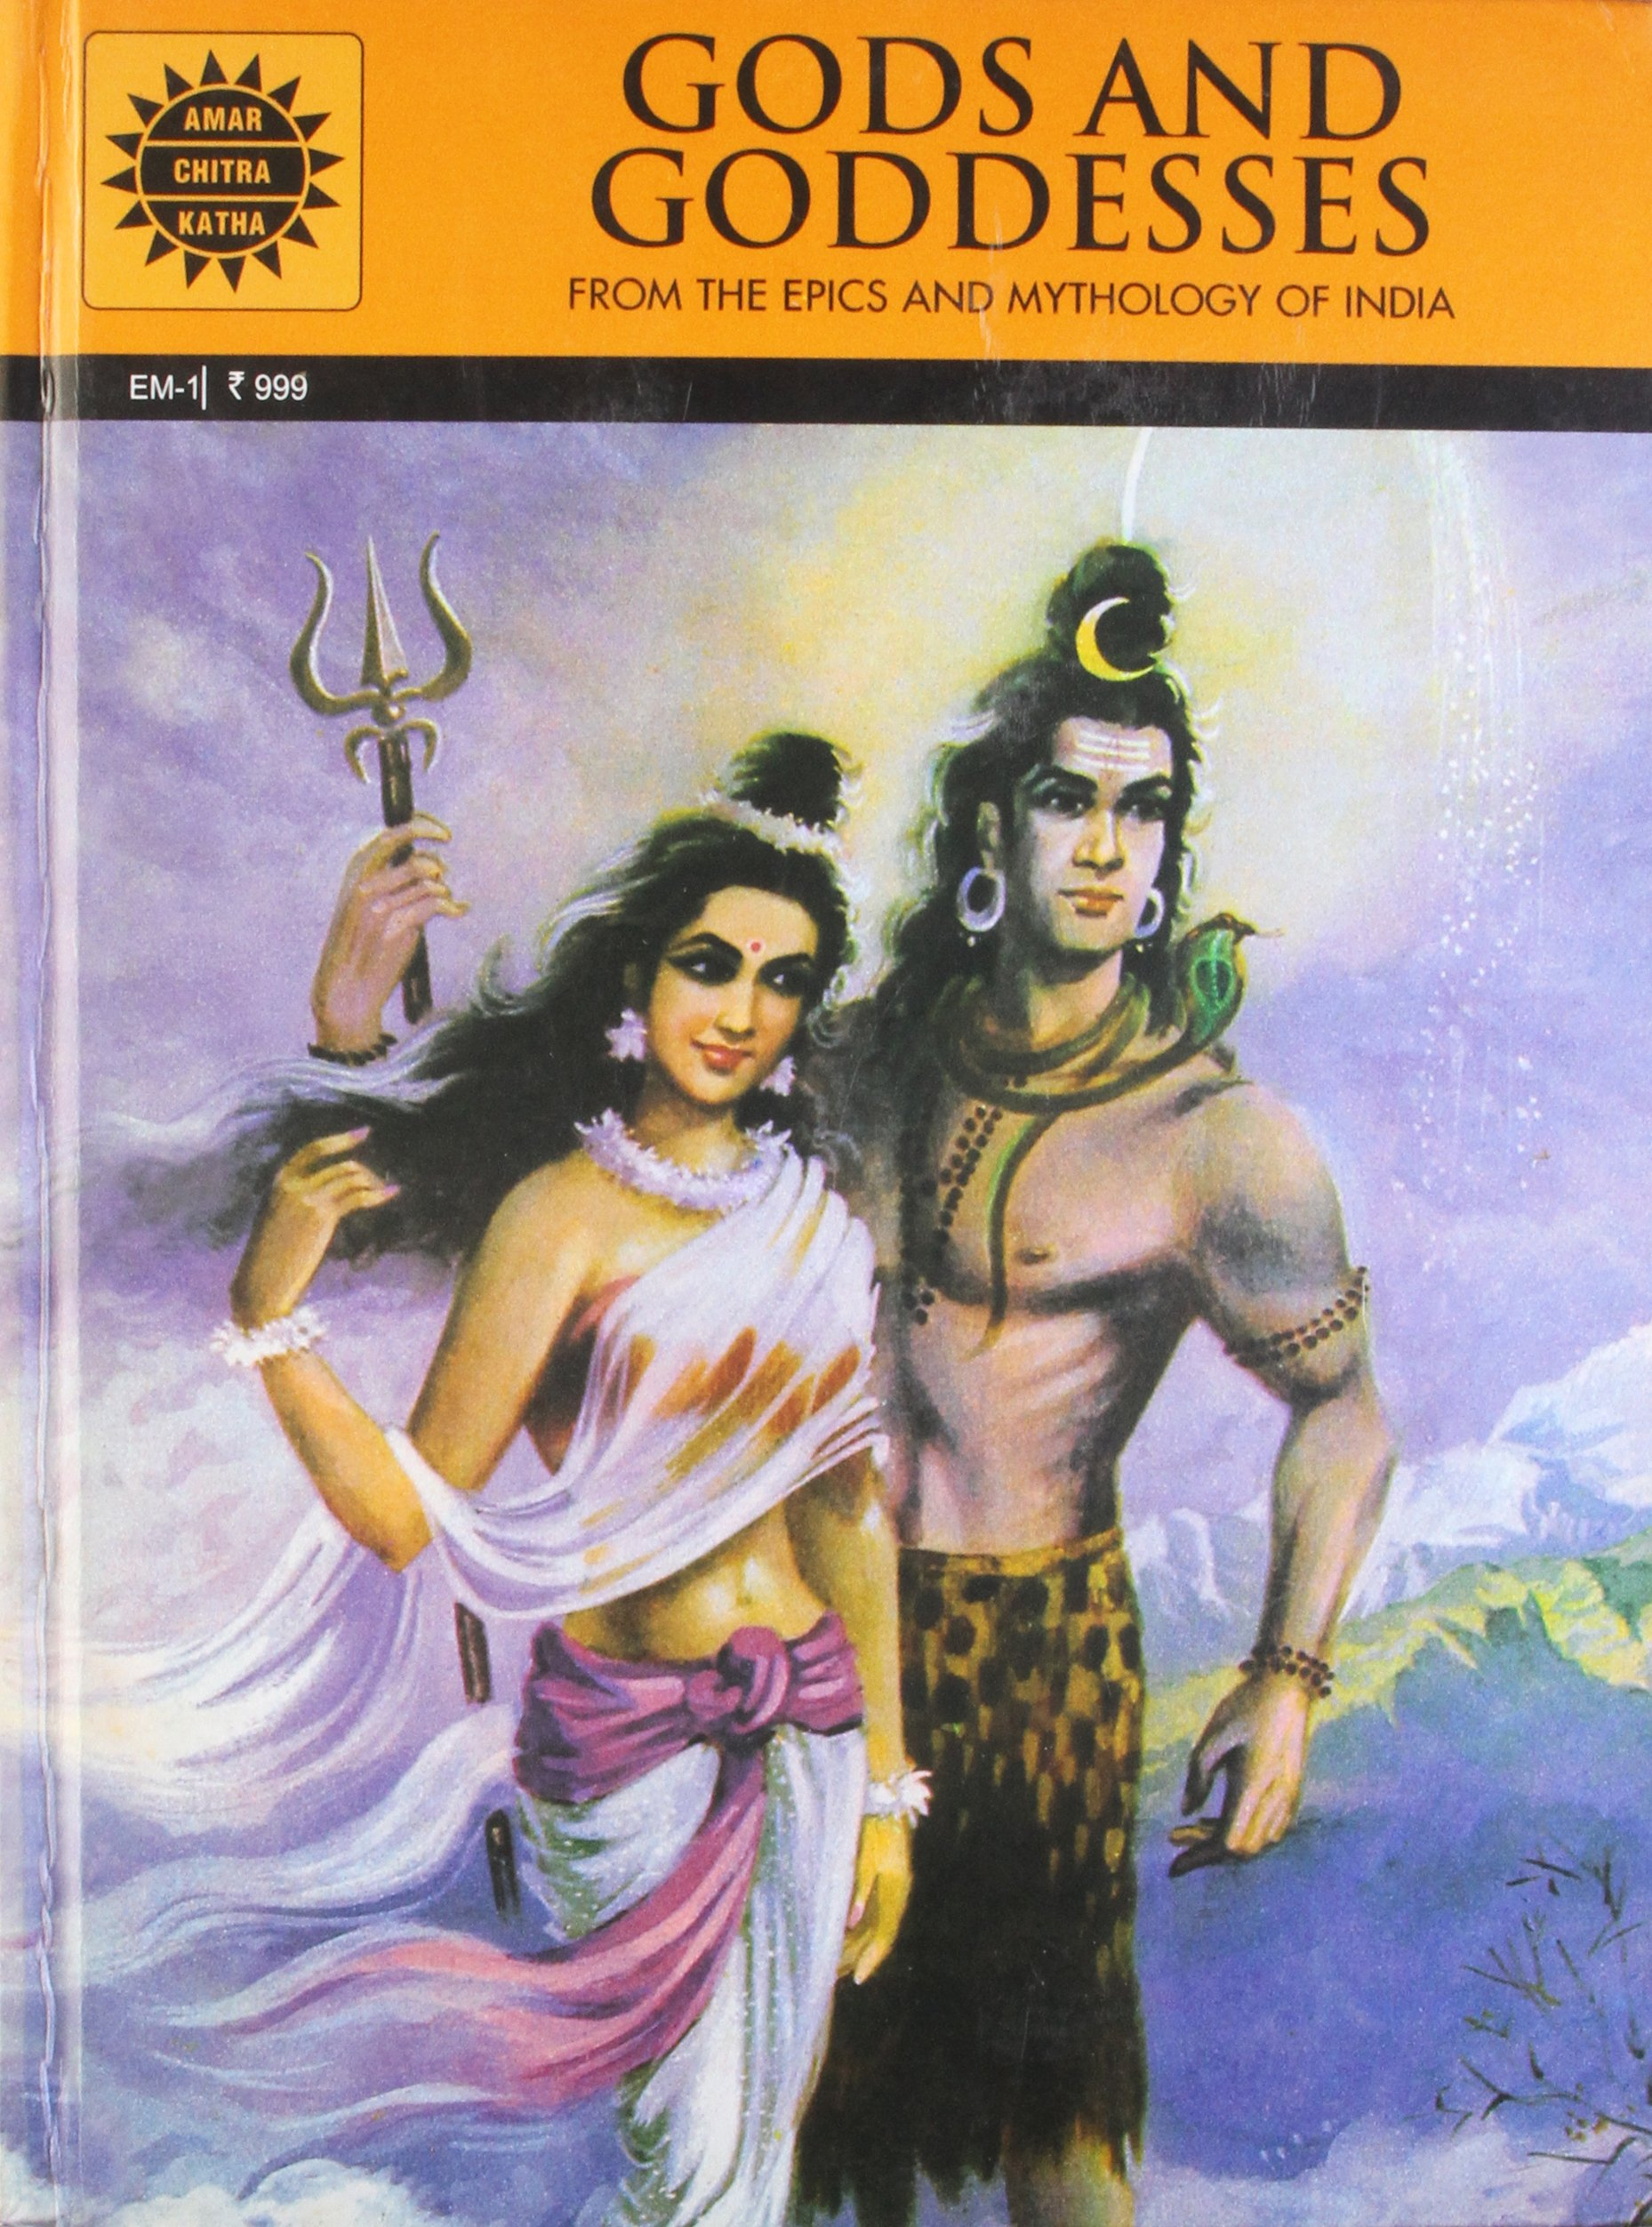 Gods and Goddesses- From the Epics and Mythology of India by Amar Chitra Katha (22 Comic Books of Characters in Hindu Religion for Children/indian regional/mythology/comic stories) pdf